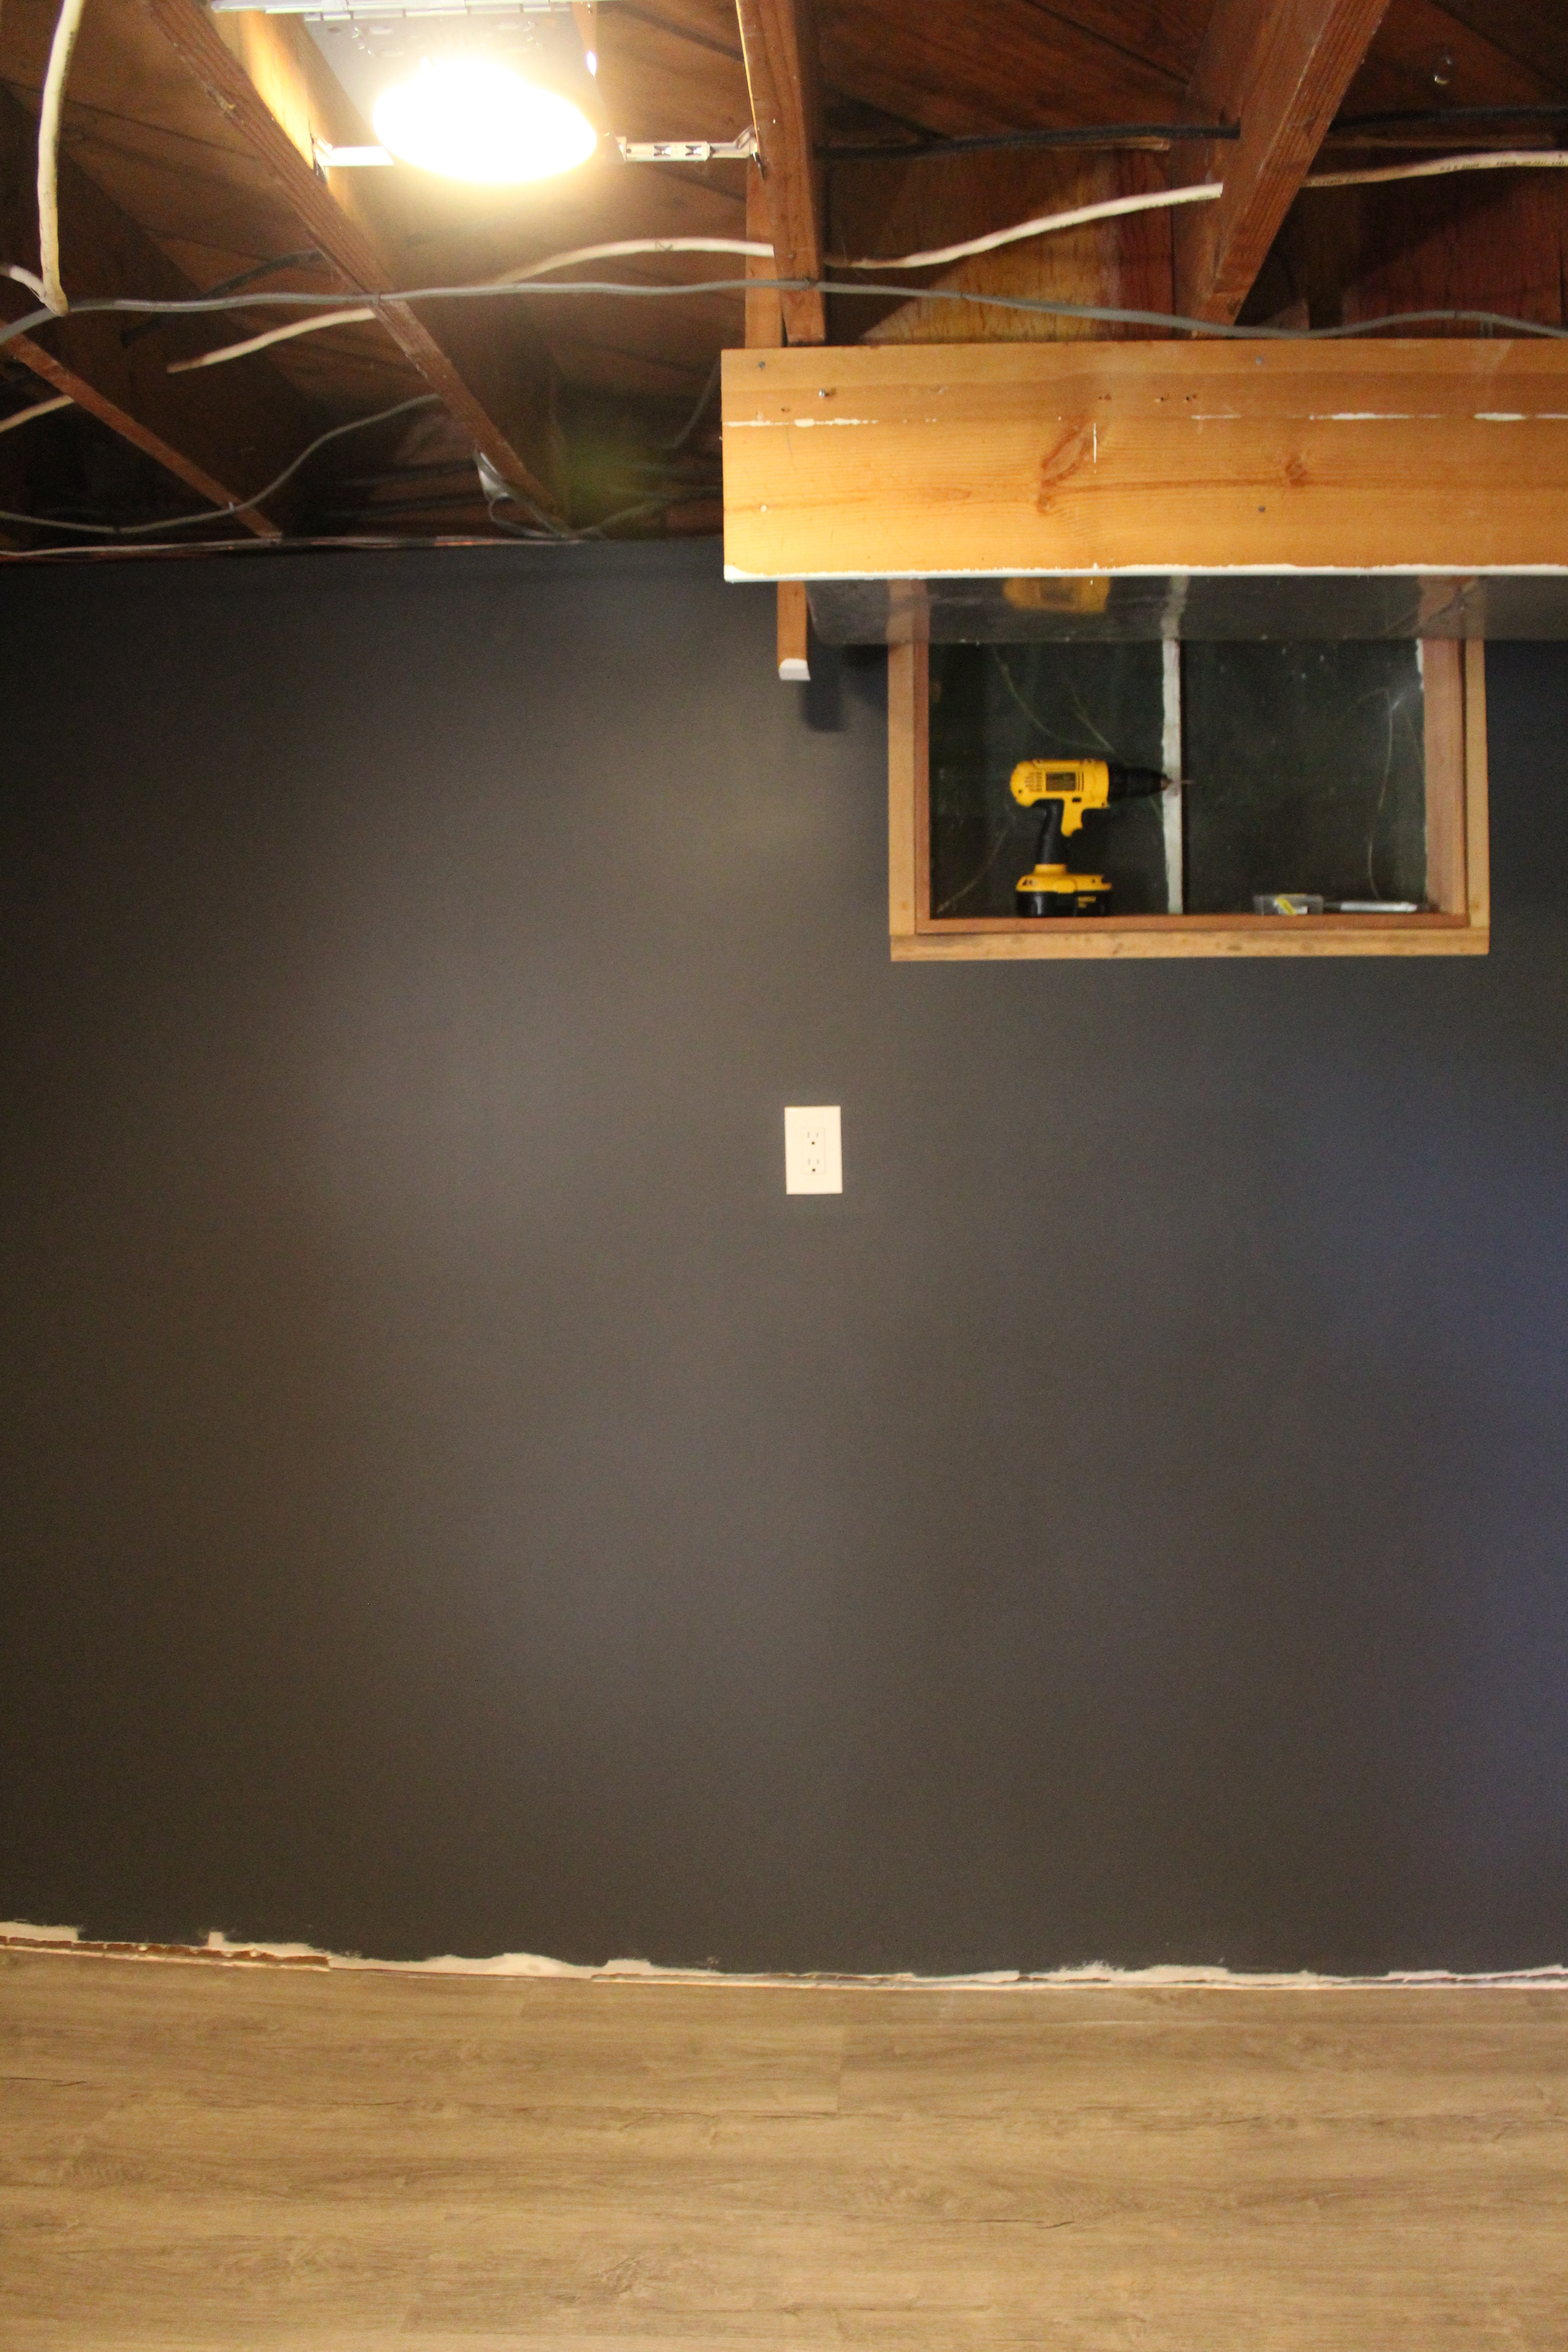 Basement Remodel Update Painted Drywall And Flooring Life On - How to put flooring in a basement